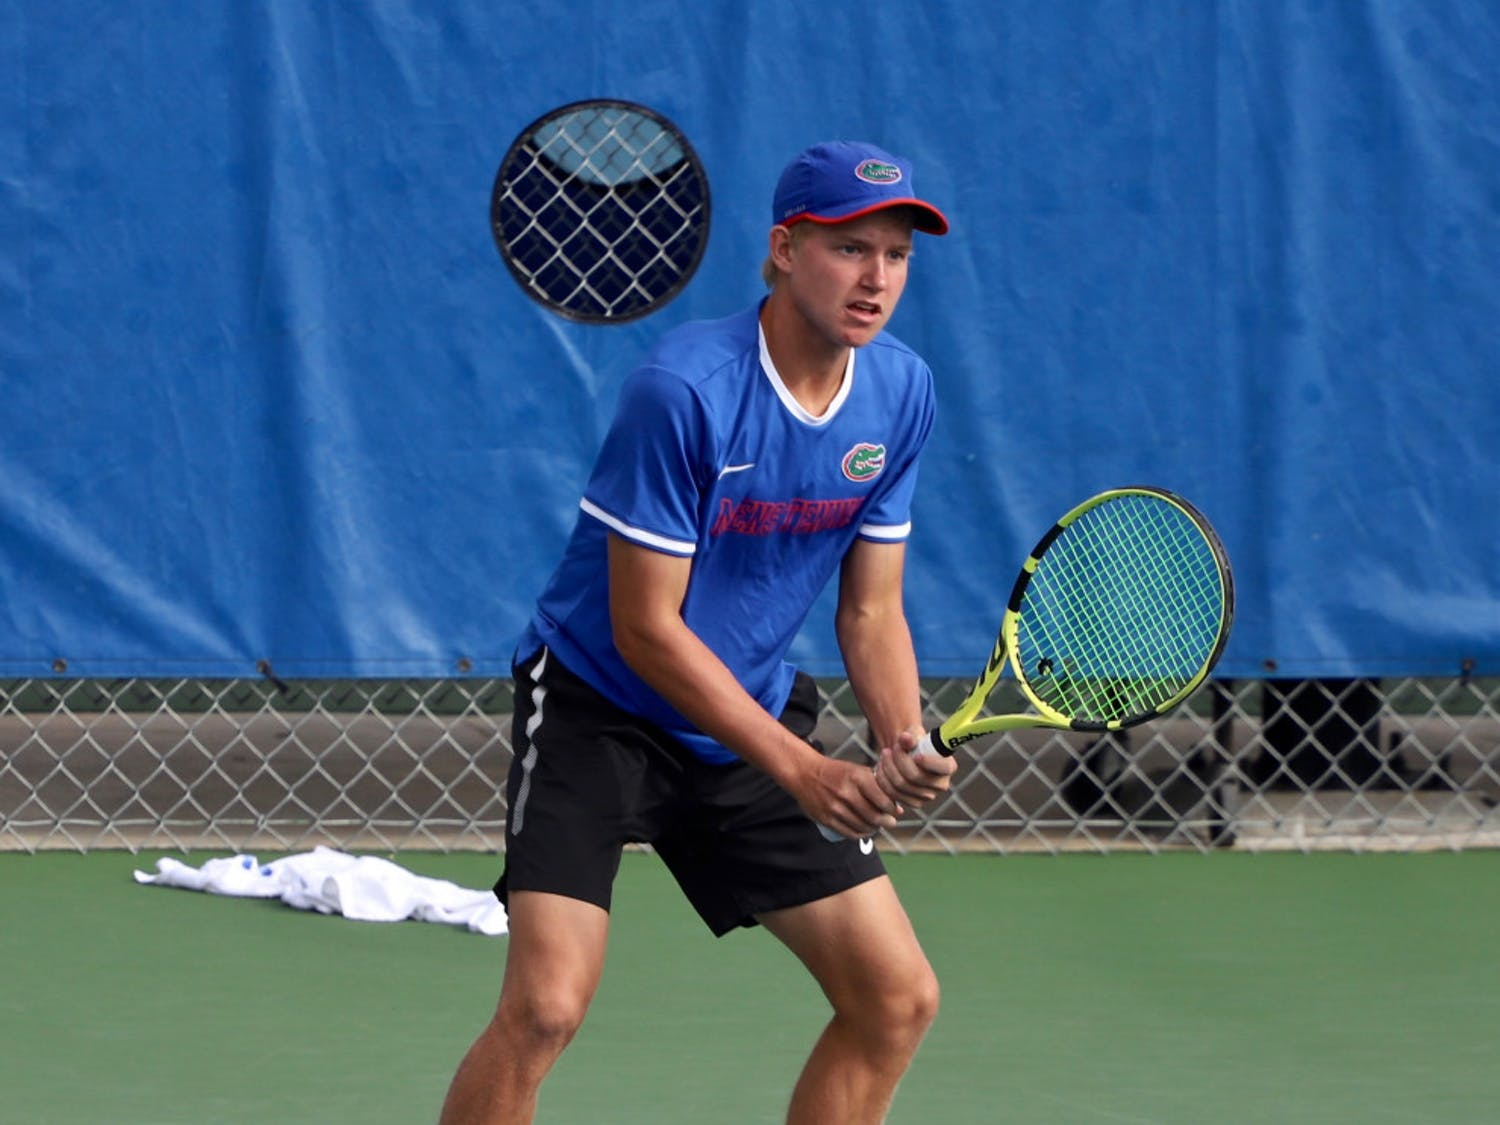 Junior Lukas Greif left the Southern Intercollegiate Championships undefeated, having won all five of his matches.